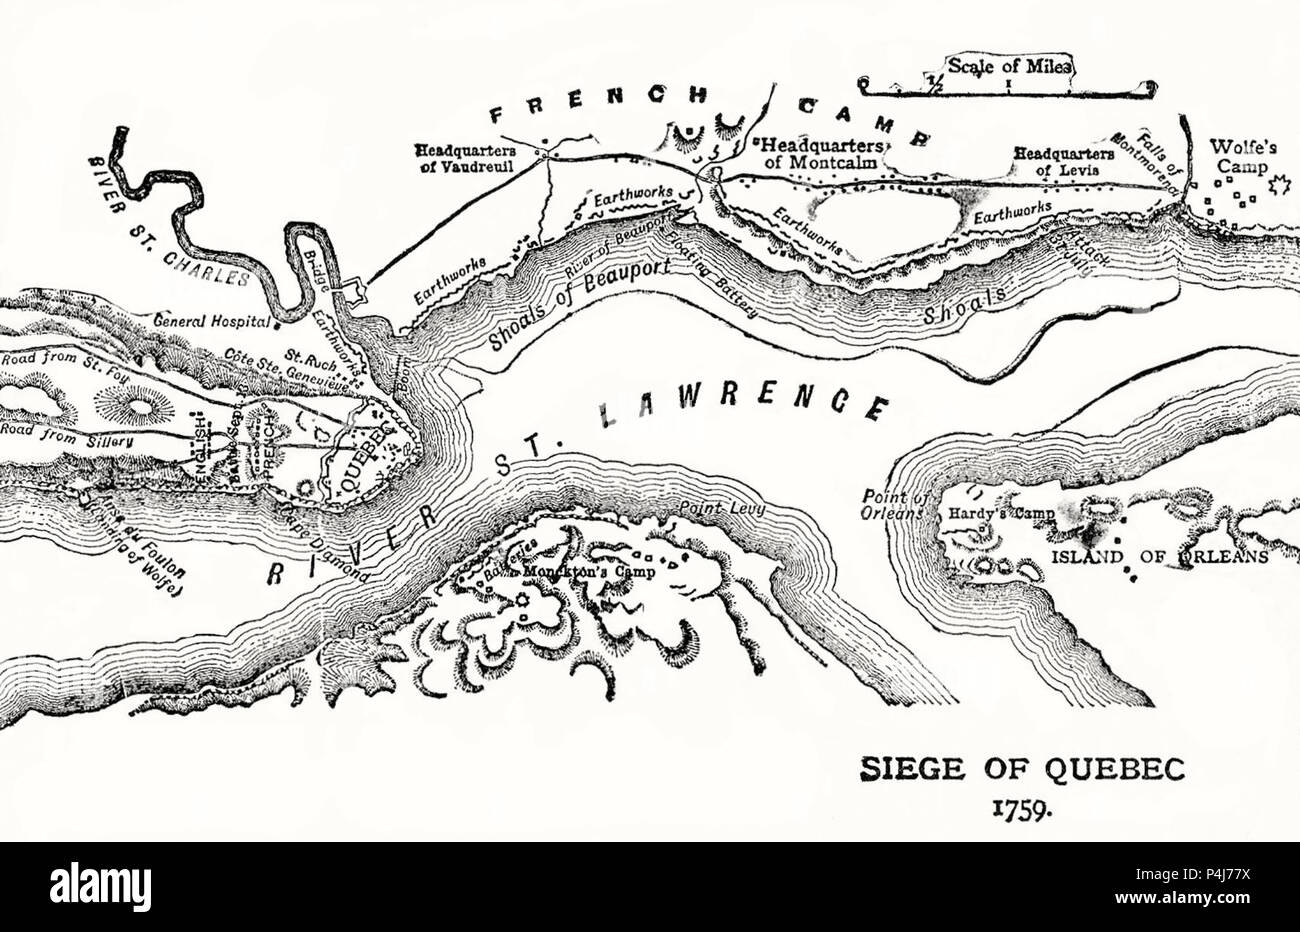 Siege of Quebec, Map of the Quebec City area showing disposition of French and British forces. The Plains of Abraham are to the left. 1759 - Stock Image